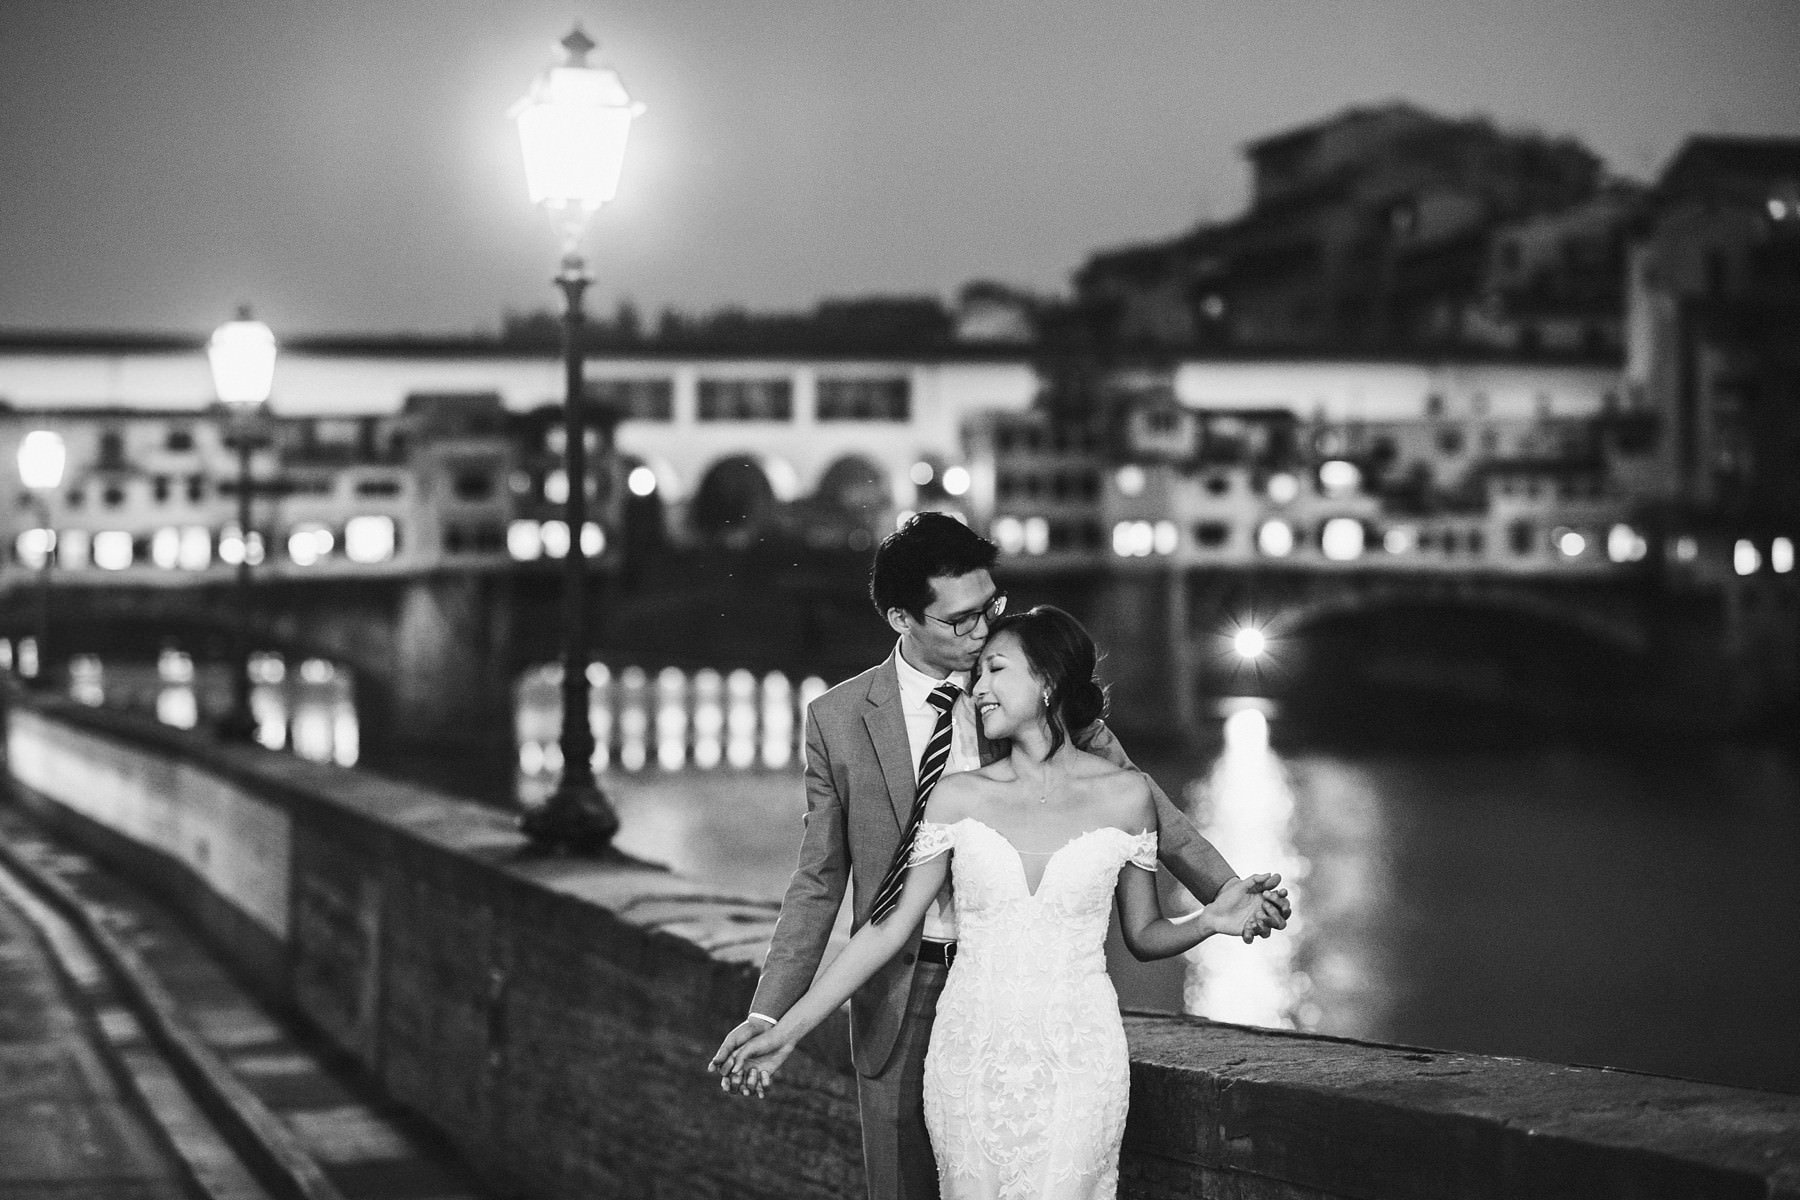 Celebrate your wedding in advance with romantic photos in Florence